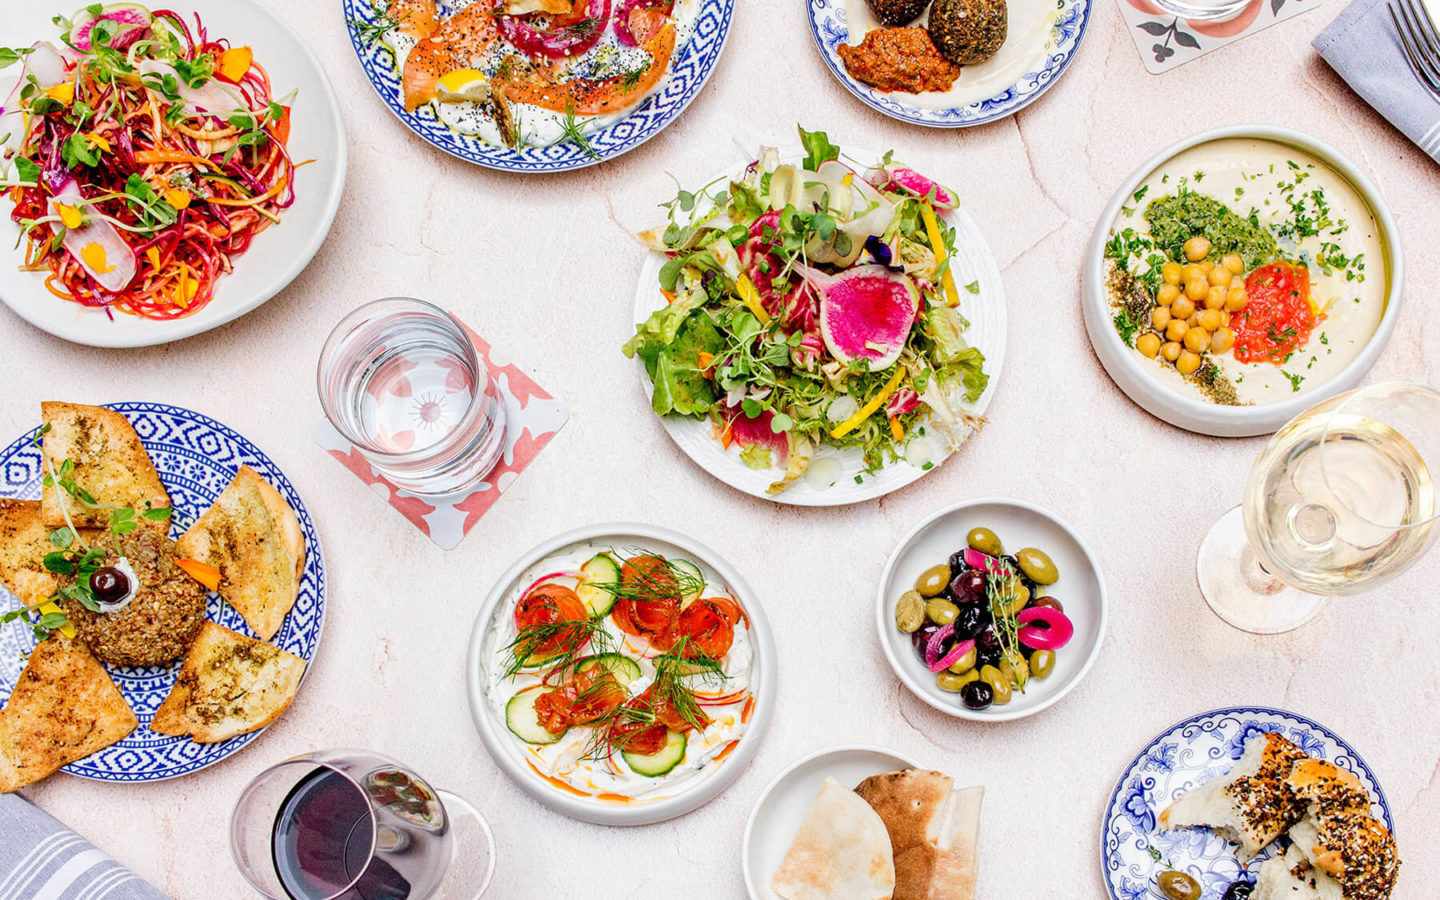 Flaylay of salads, hummus, falafel and vine leaves at Babel in North York